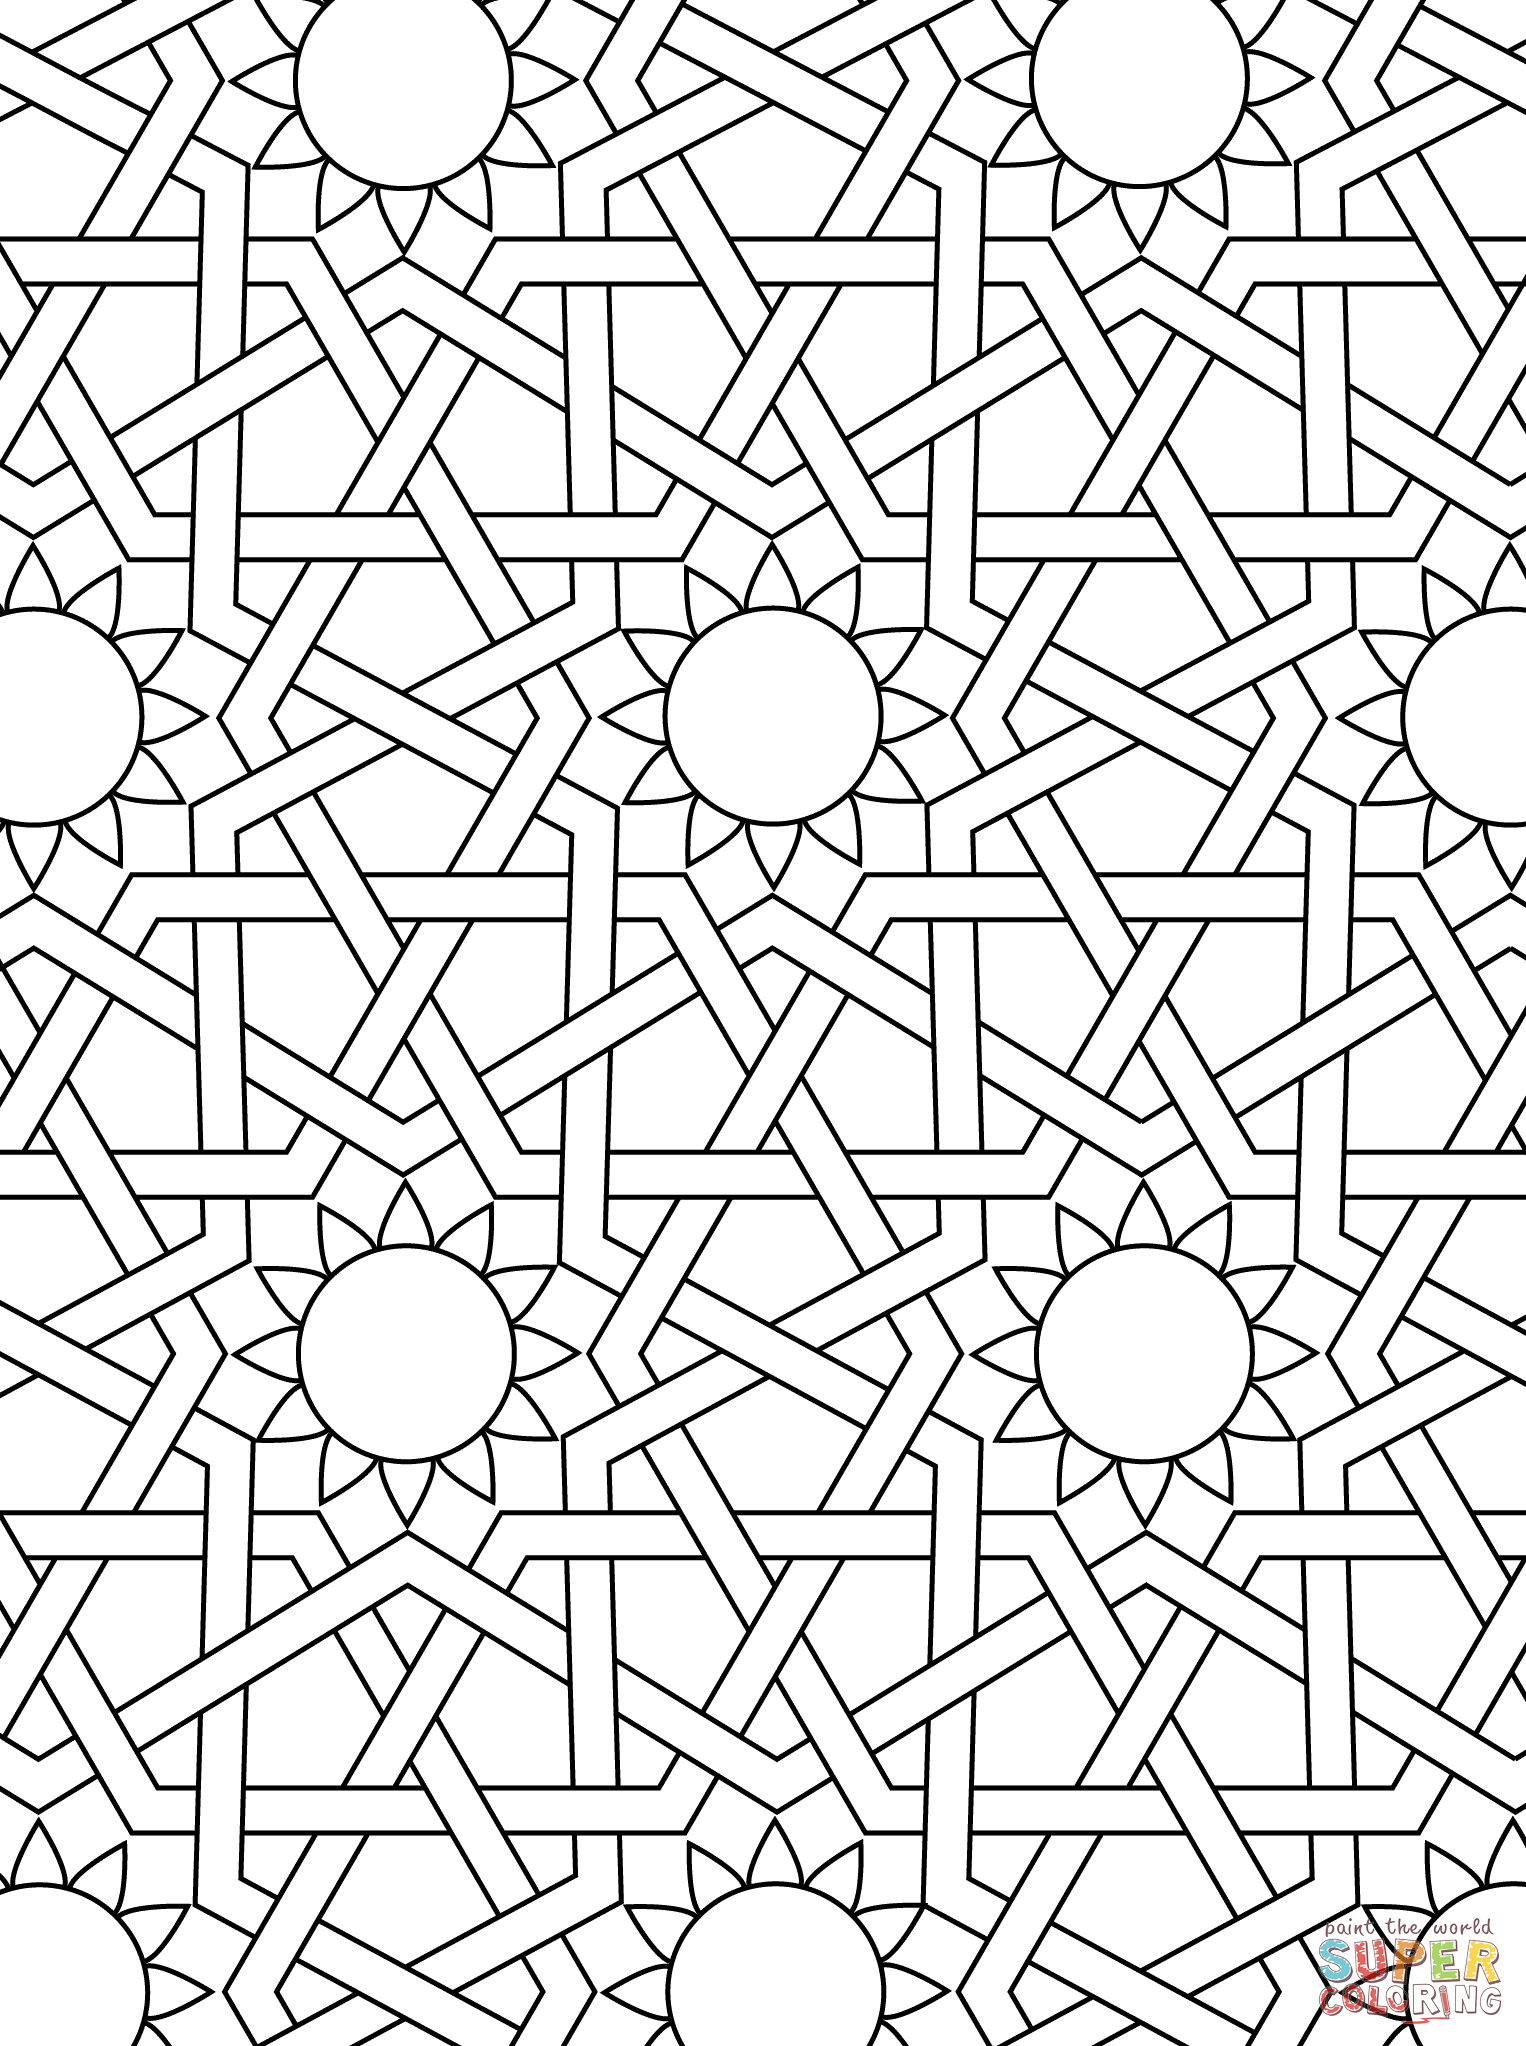 - Islamic Ornament Mosaic Coloring Page (With Images) Geometric